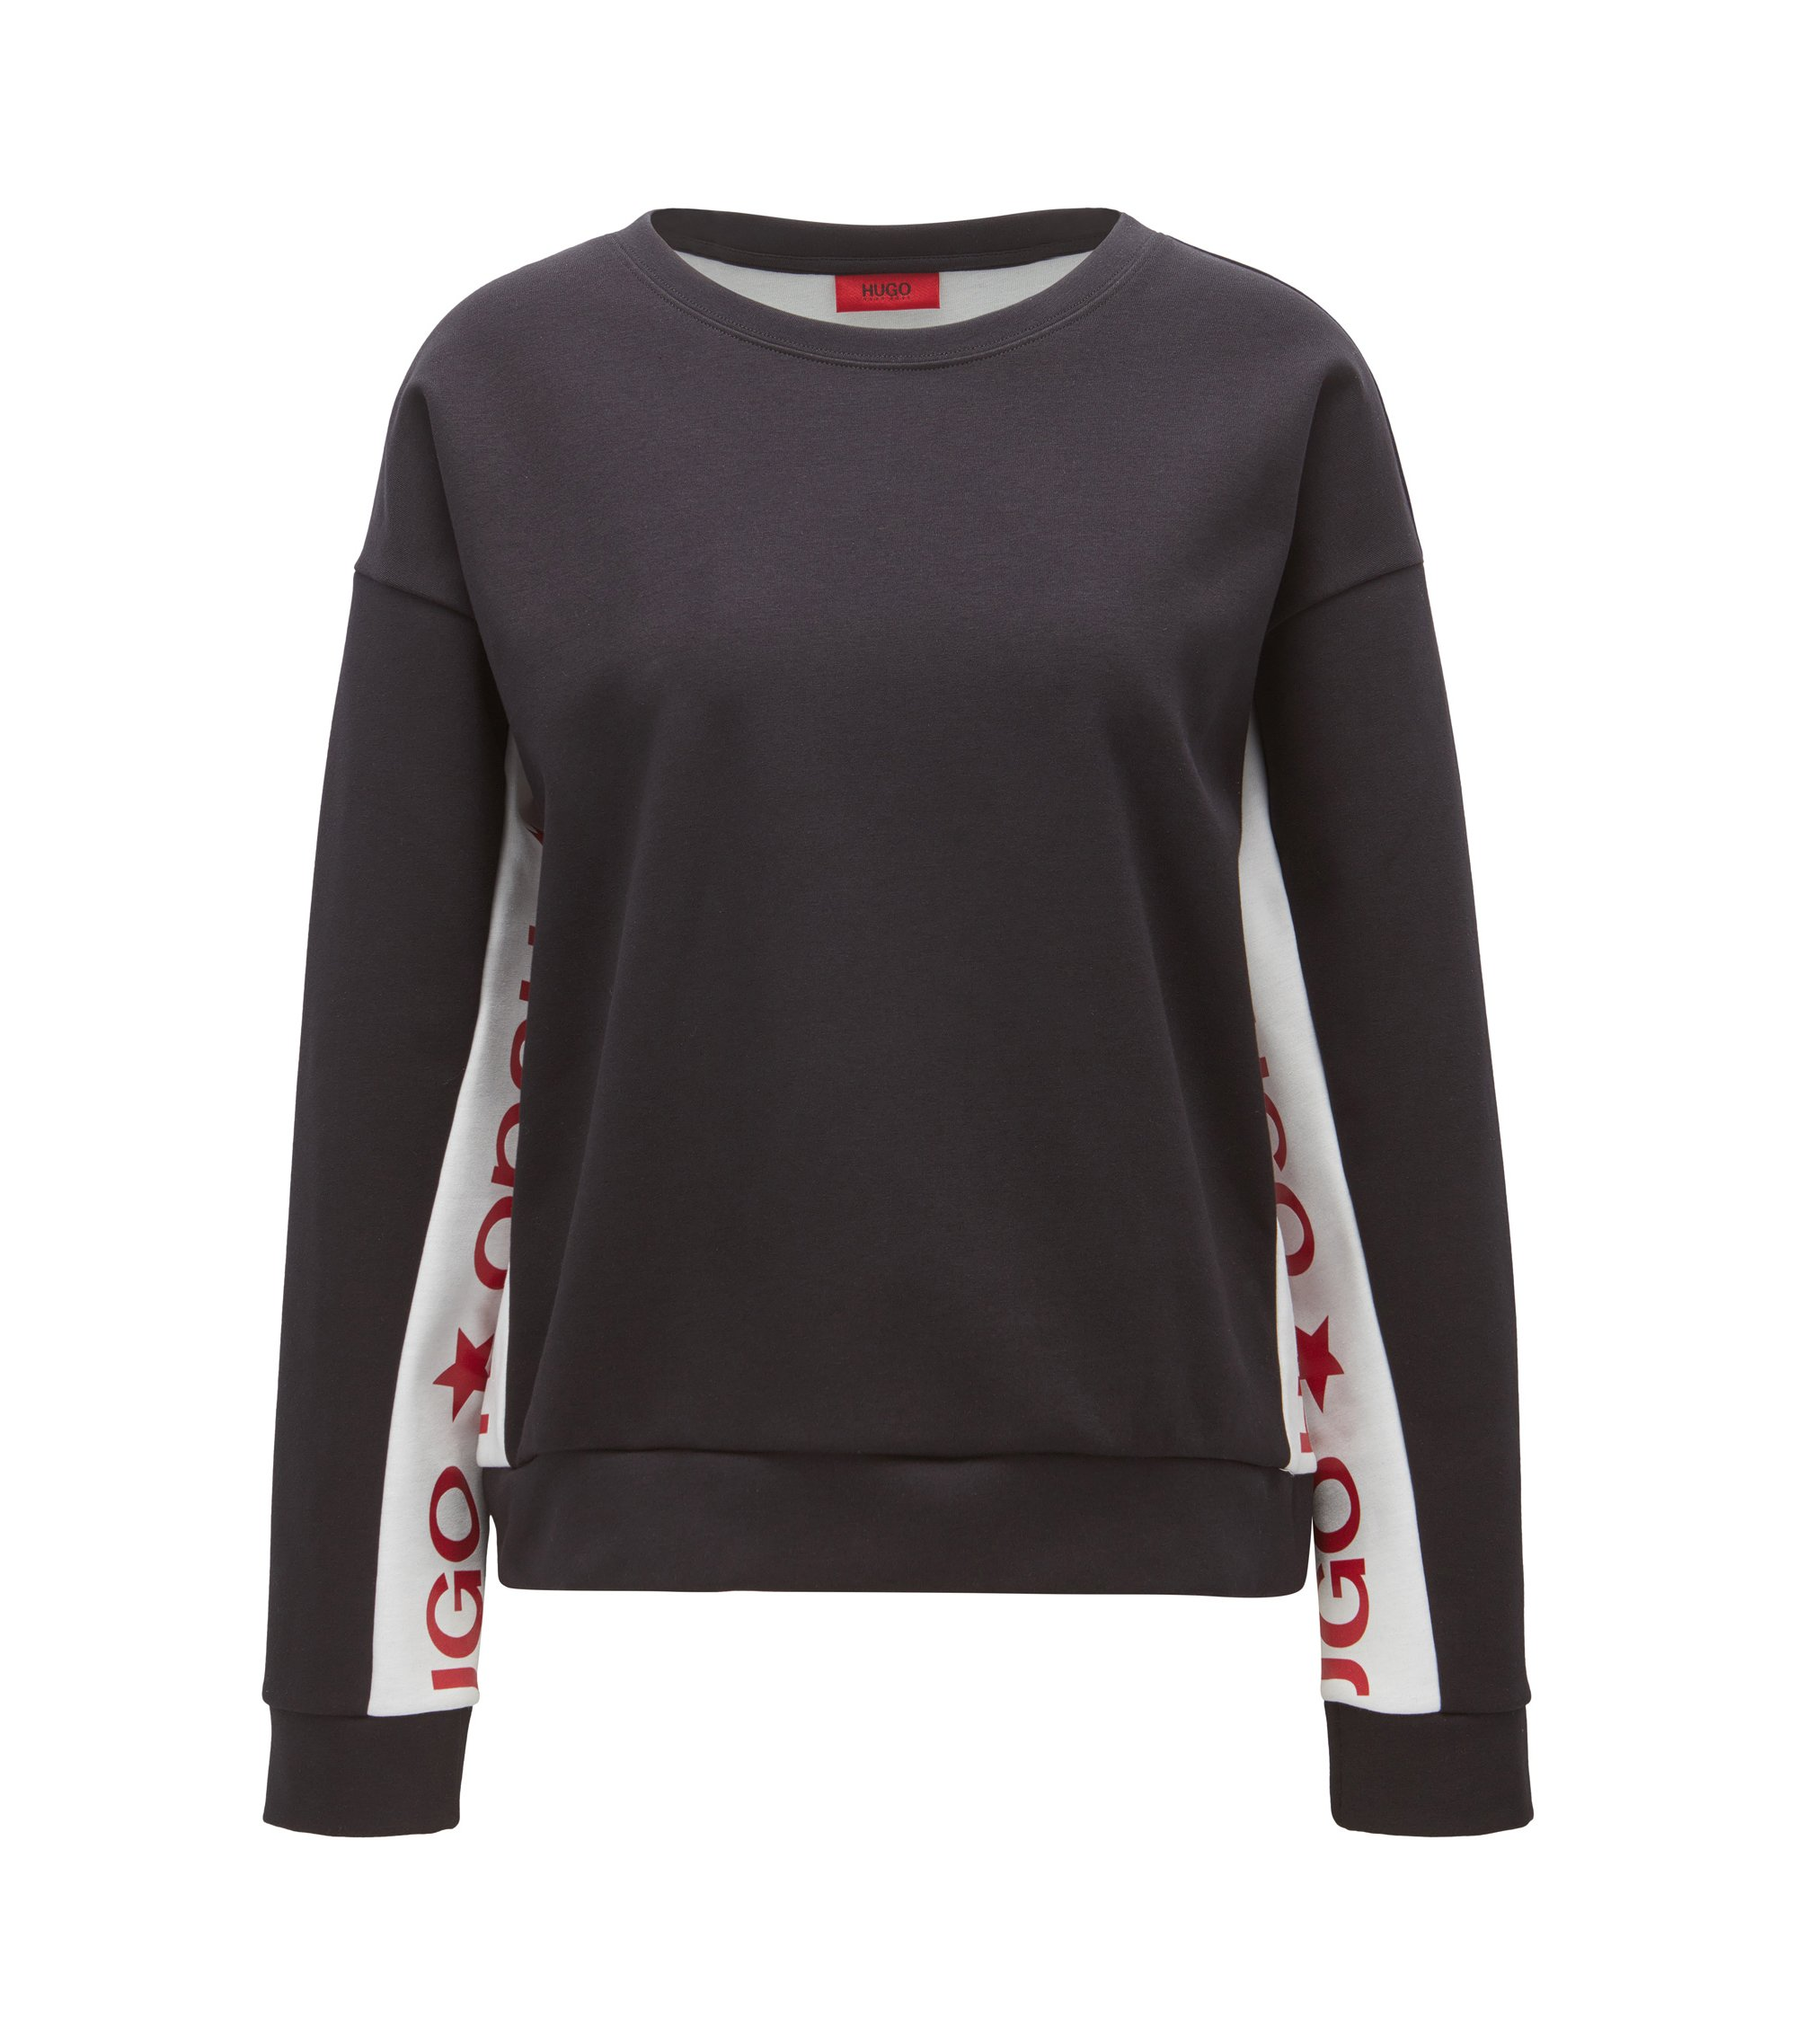 Cotton-blend sweater with contrast inserts, Patterned